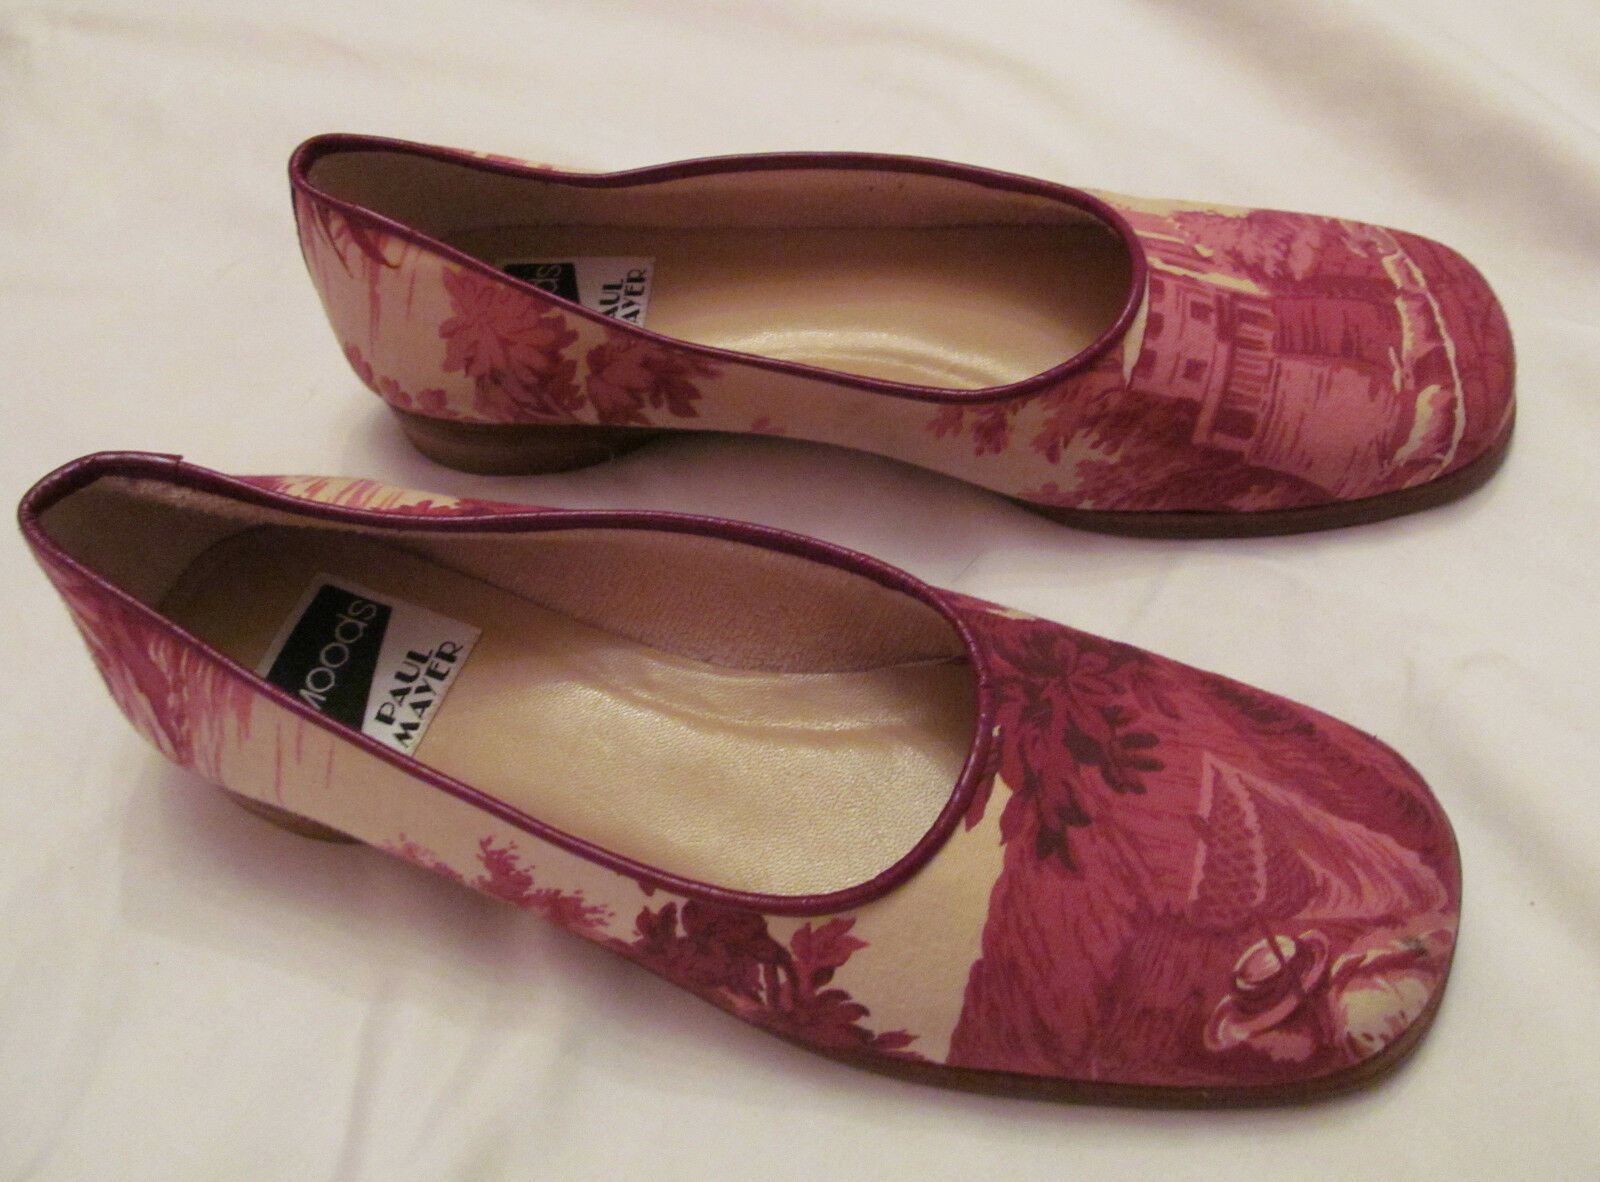 PAUL MAYER MOODS canvas shepard country sheep trees scene print loafers schuhe 9